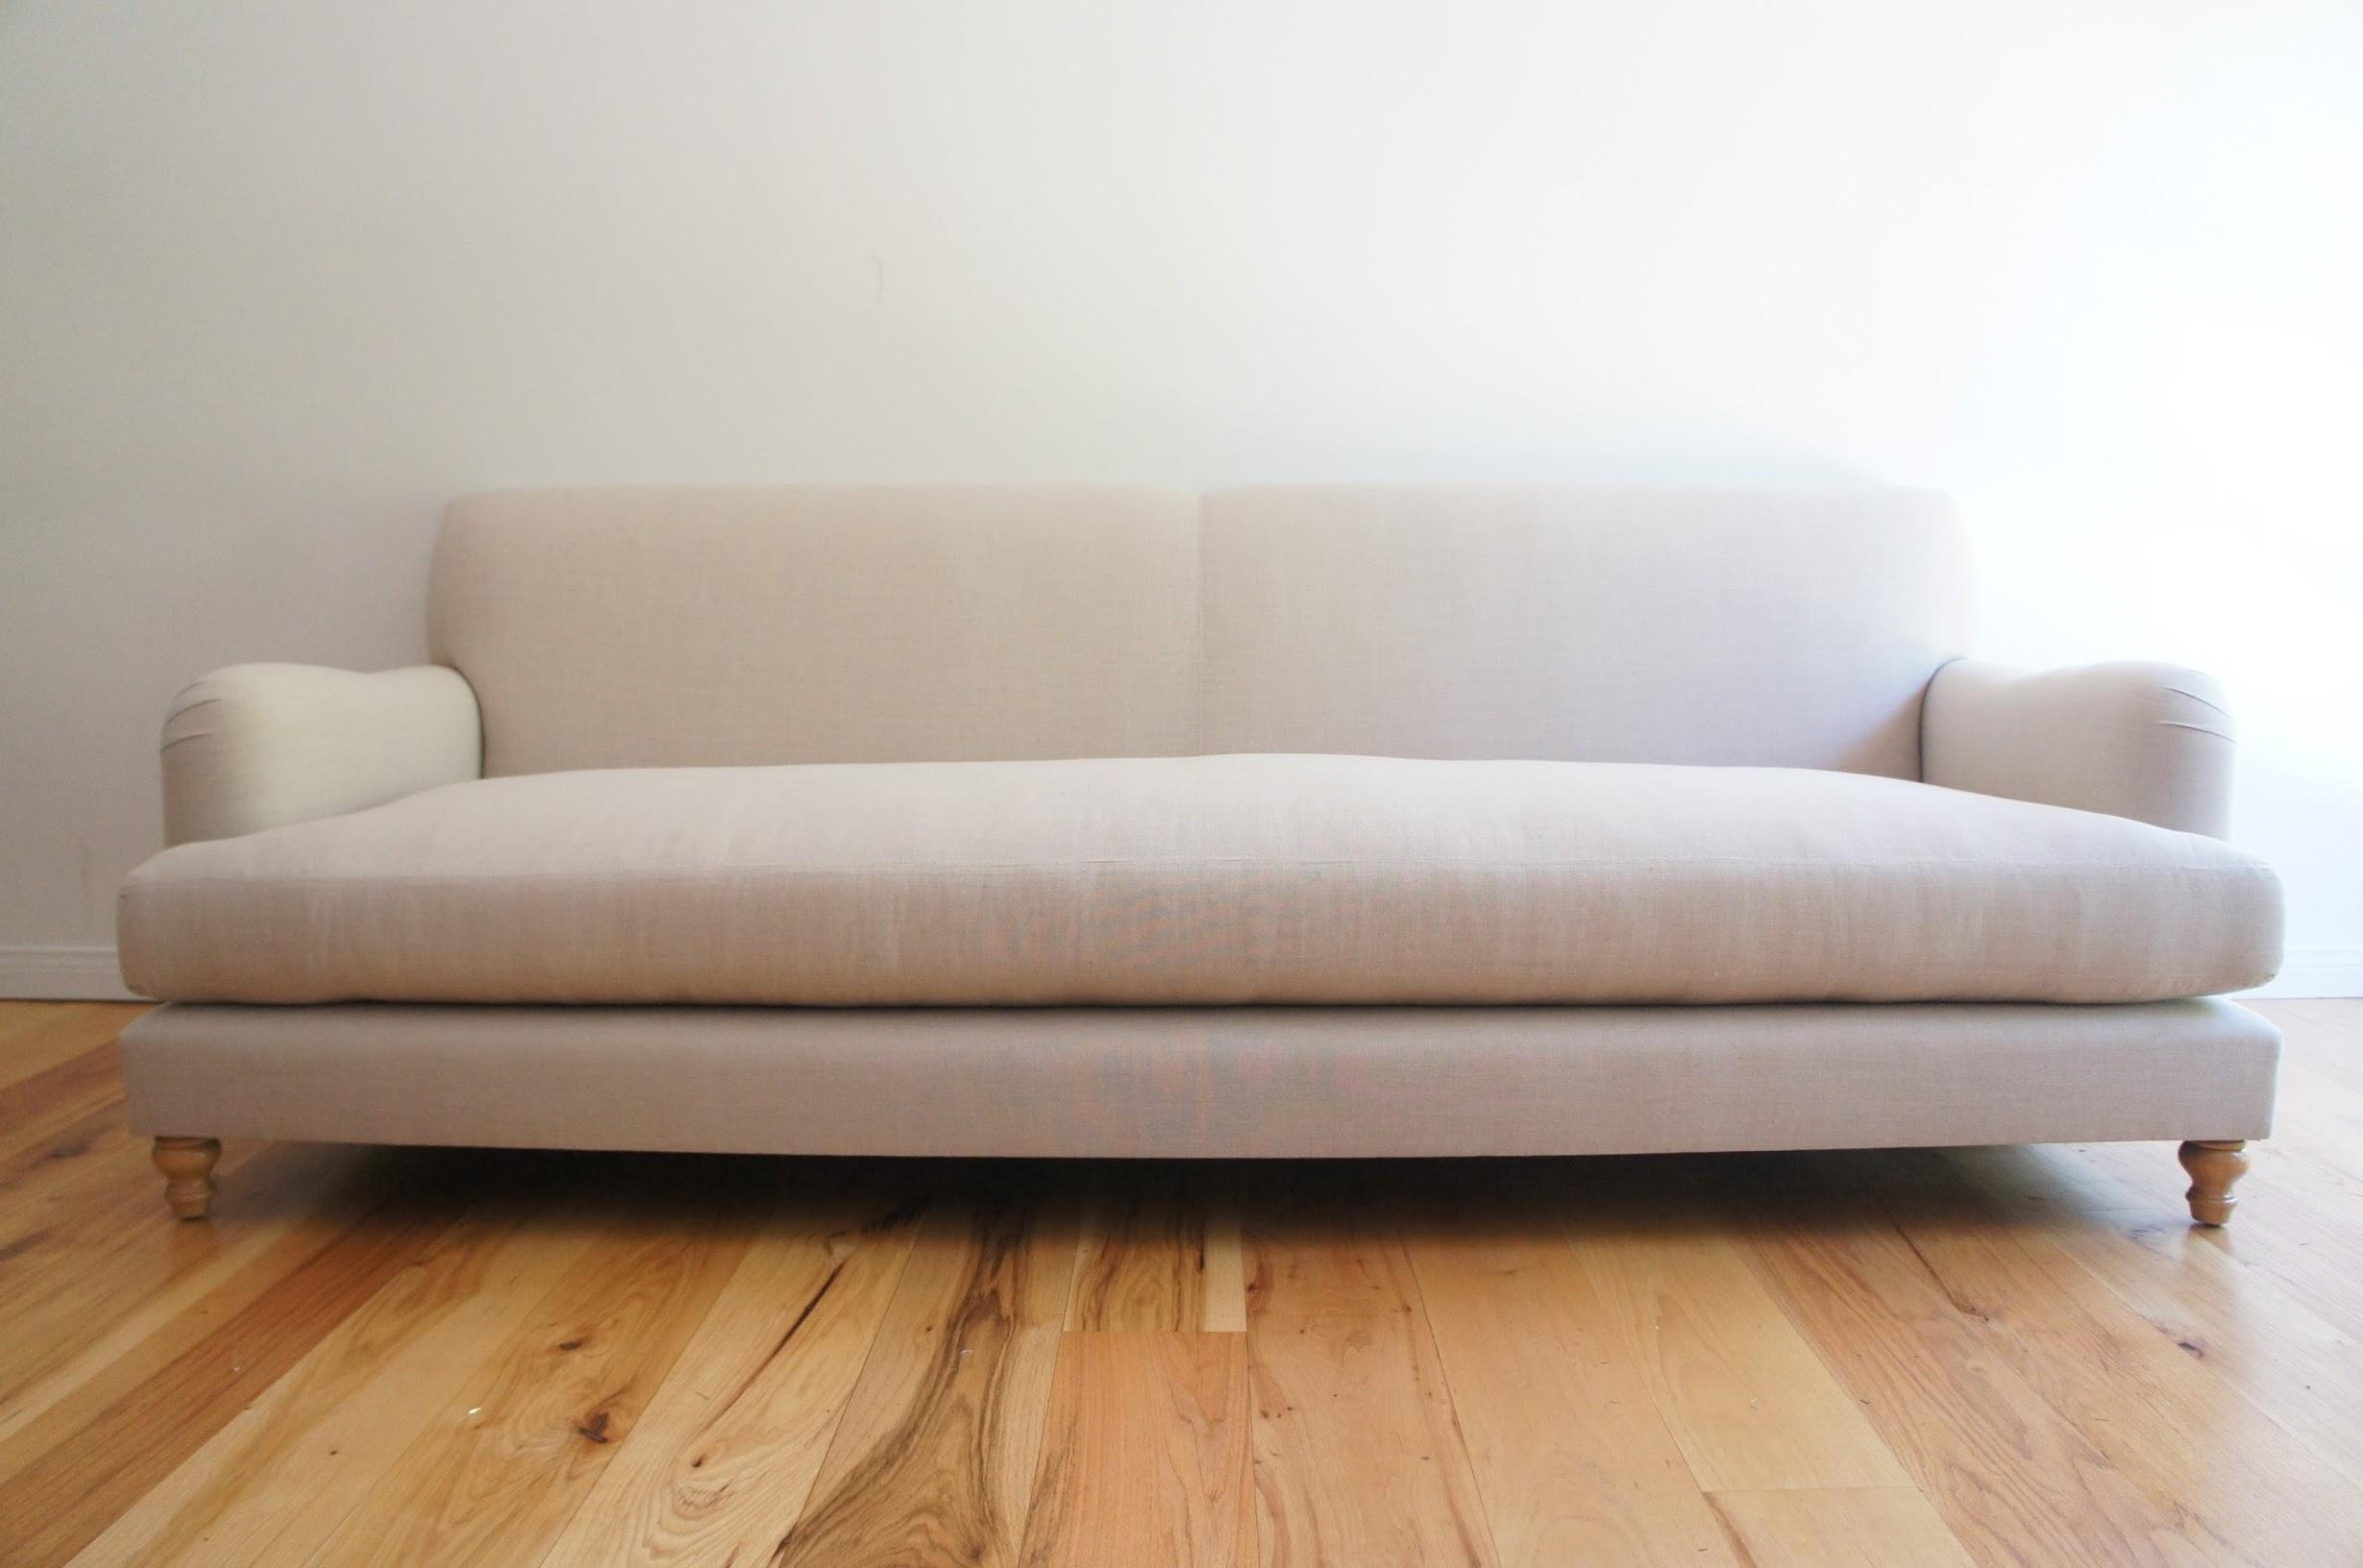 custom sofa maker los angeles patio sofas canada roll arm with modern lines | chairish